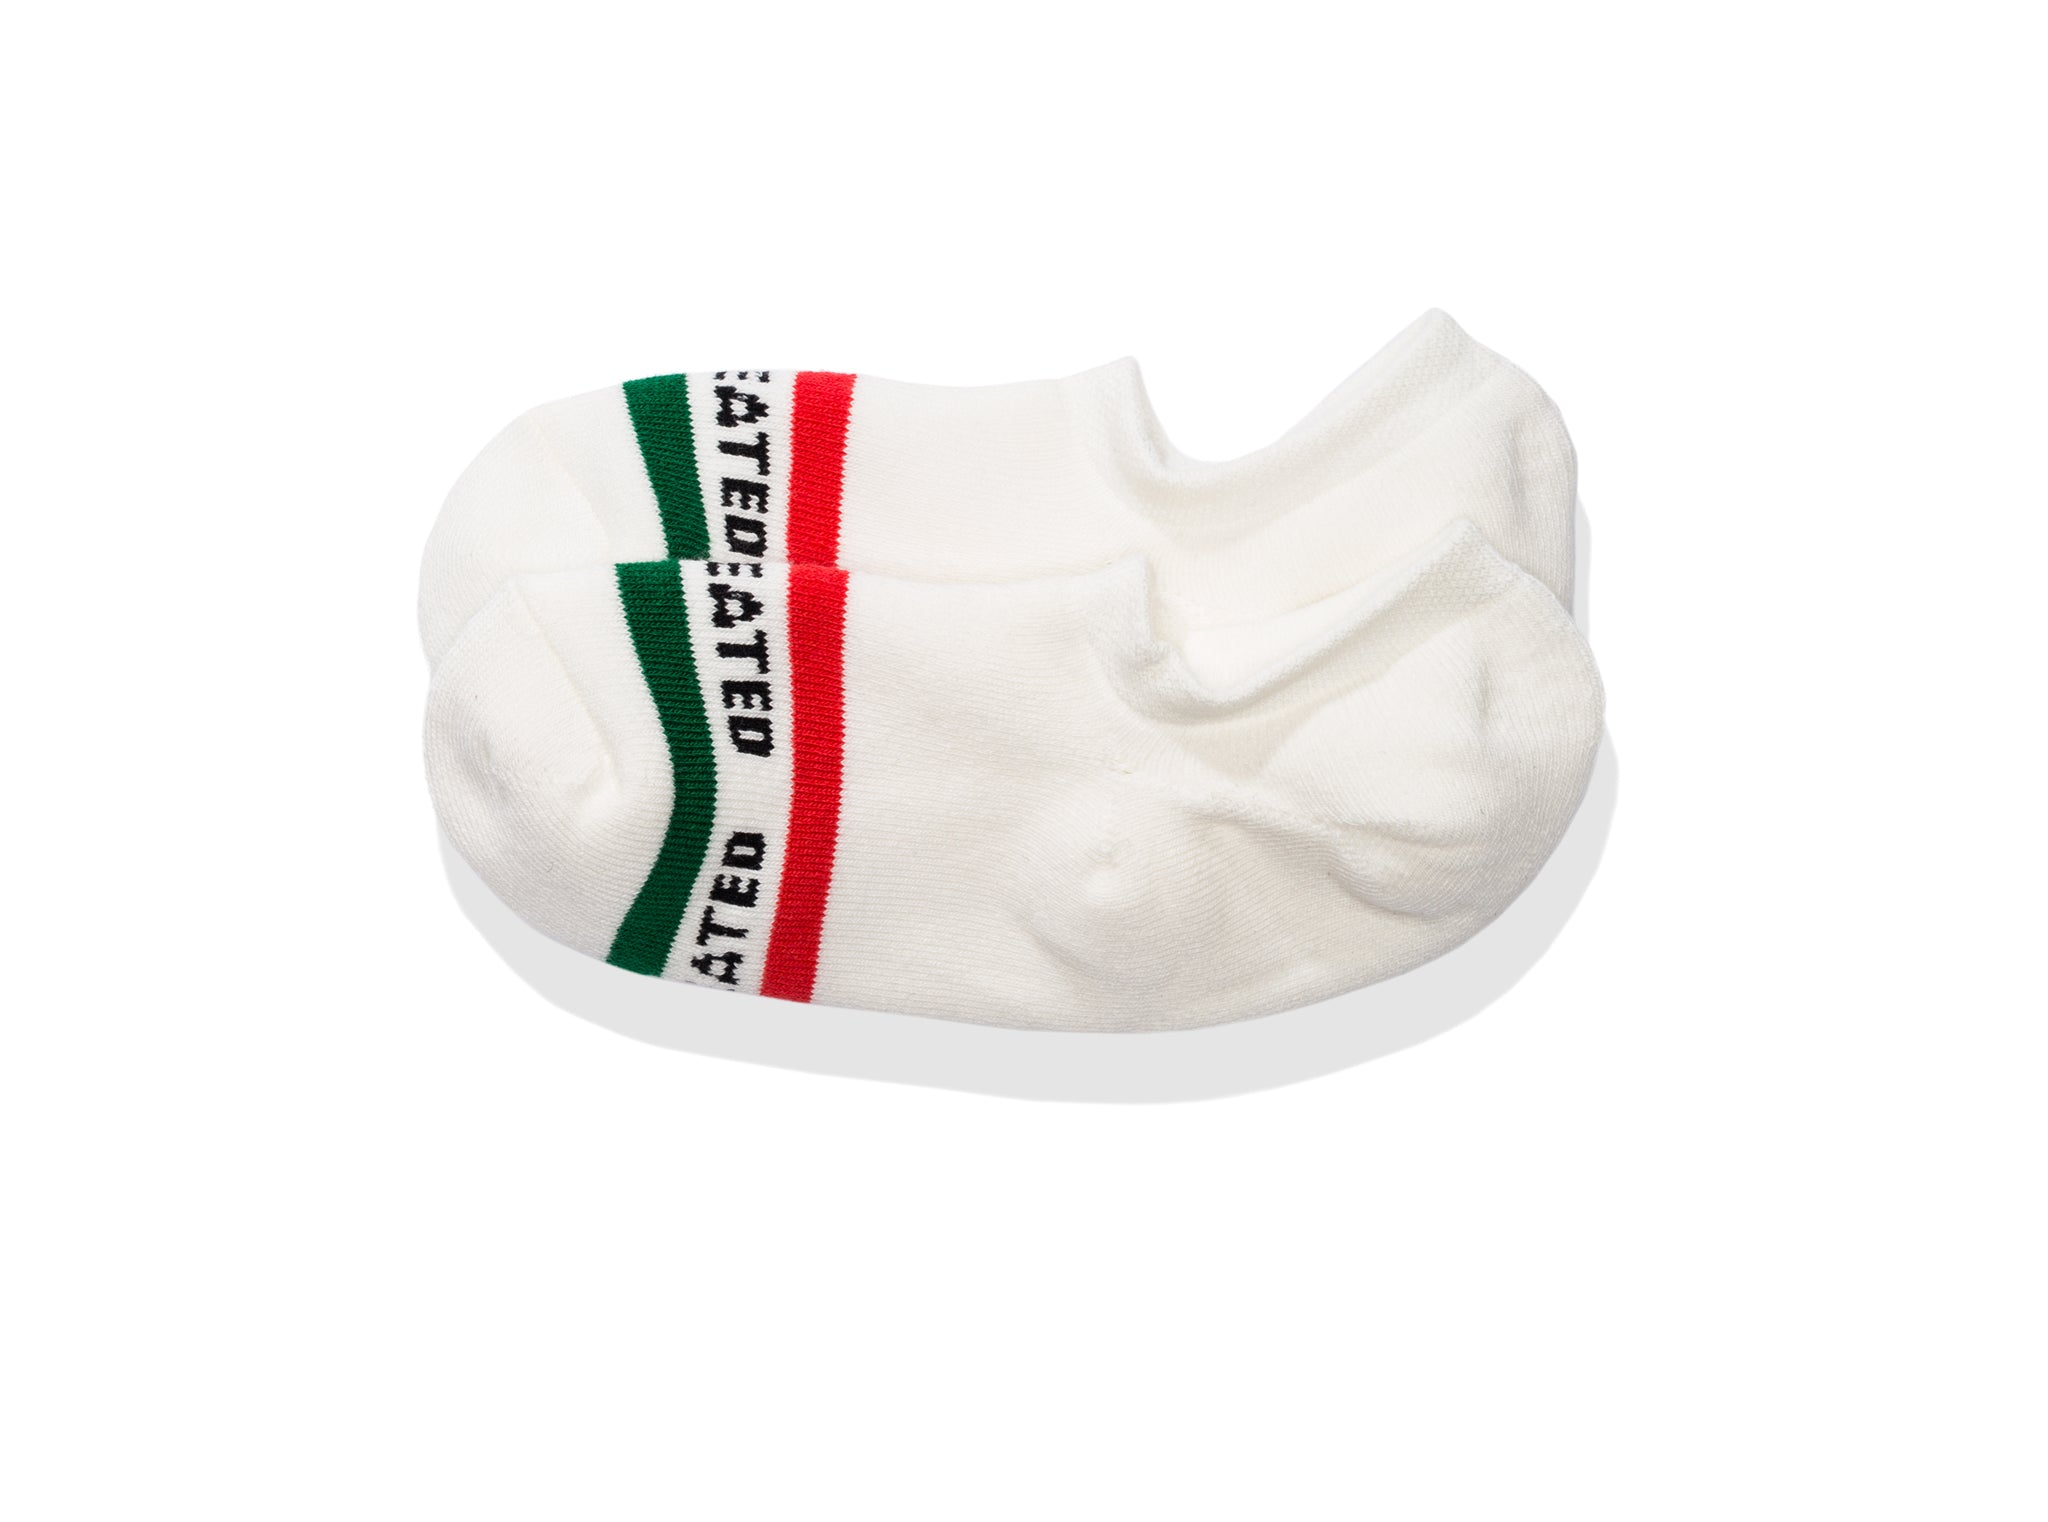 UNDEFEATED LOGO SOCK - PED